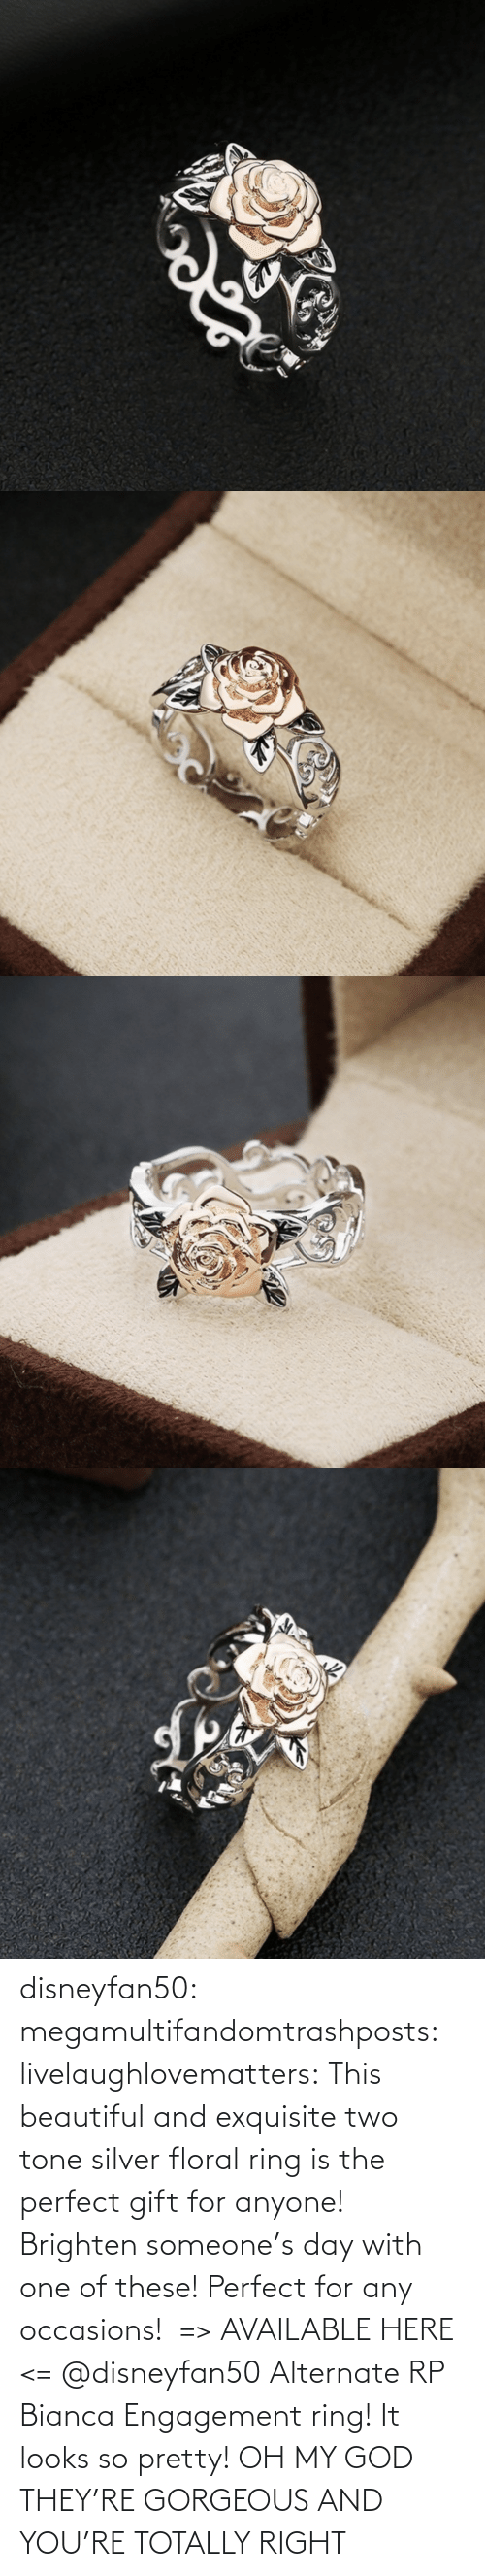 Silver: disneyfan50: megamultifandomtrashposts:  livelaughlovematters:  This beautiful and exquisite two tone silver floral ring is the perfect gift for anyone! Brighten someone's day with one of these! Perfect for any occasions!  => AVAILABLE HERE <=    @disneyfan50 Alternate RP Bianca Engagement ring! It looks so pretty!  OH MY GOD THEY'RE GORGEOUS AND YOU'RE TOTALLY RIGHT